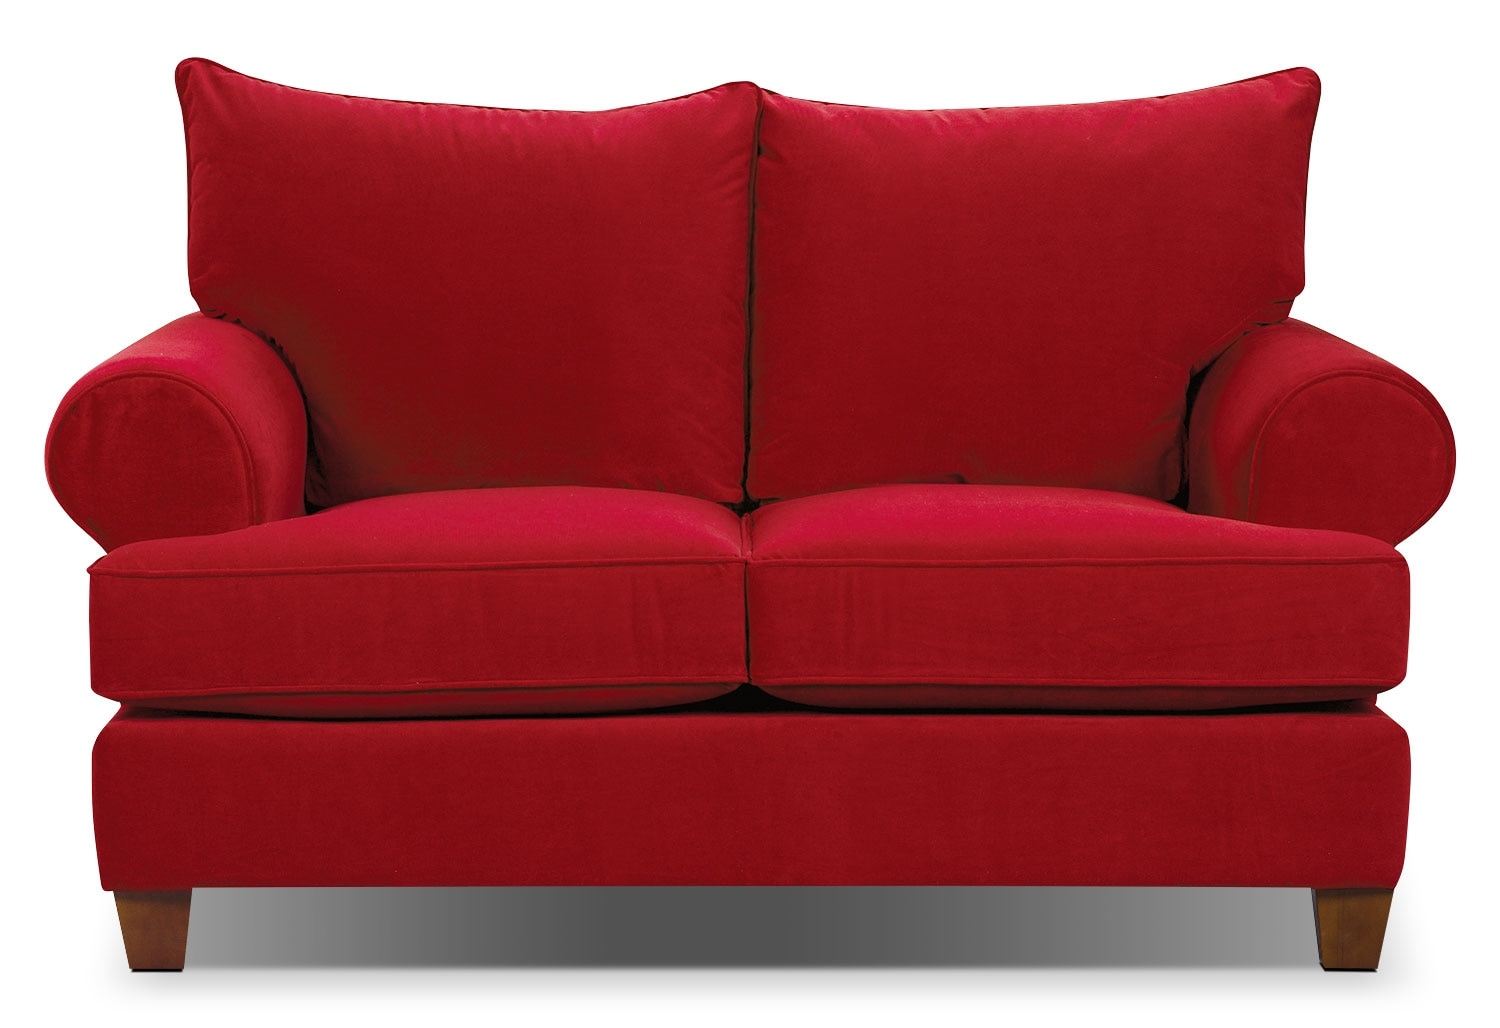 Living Room Furniture - Paige Microsuede Loveseat - Red